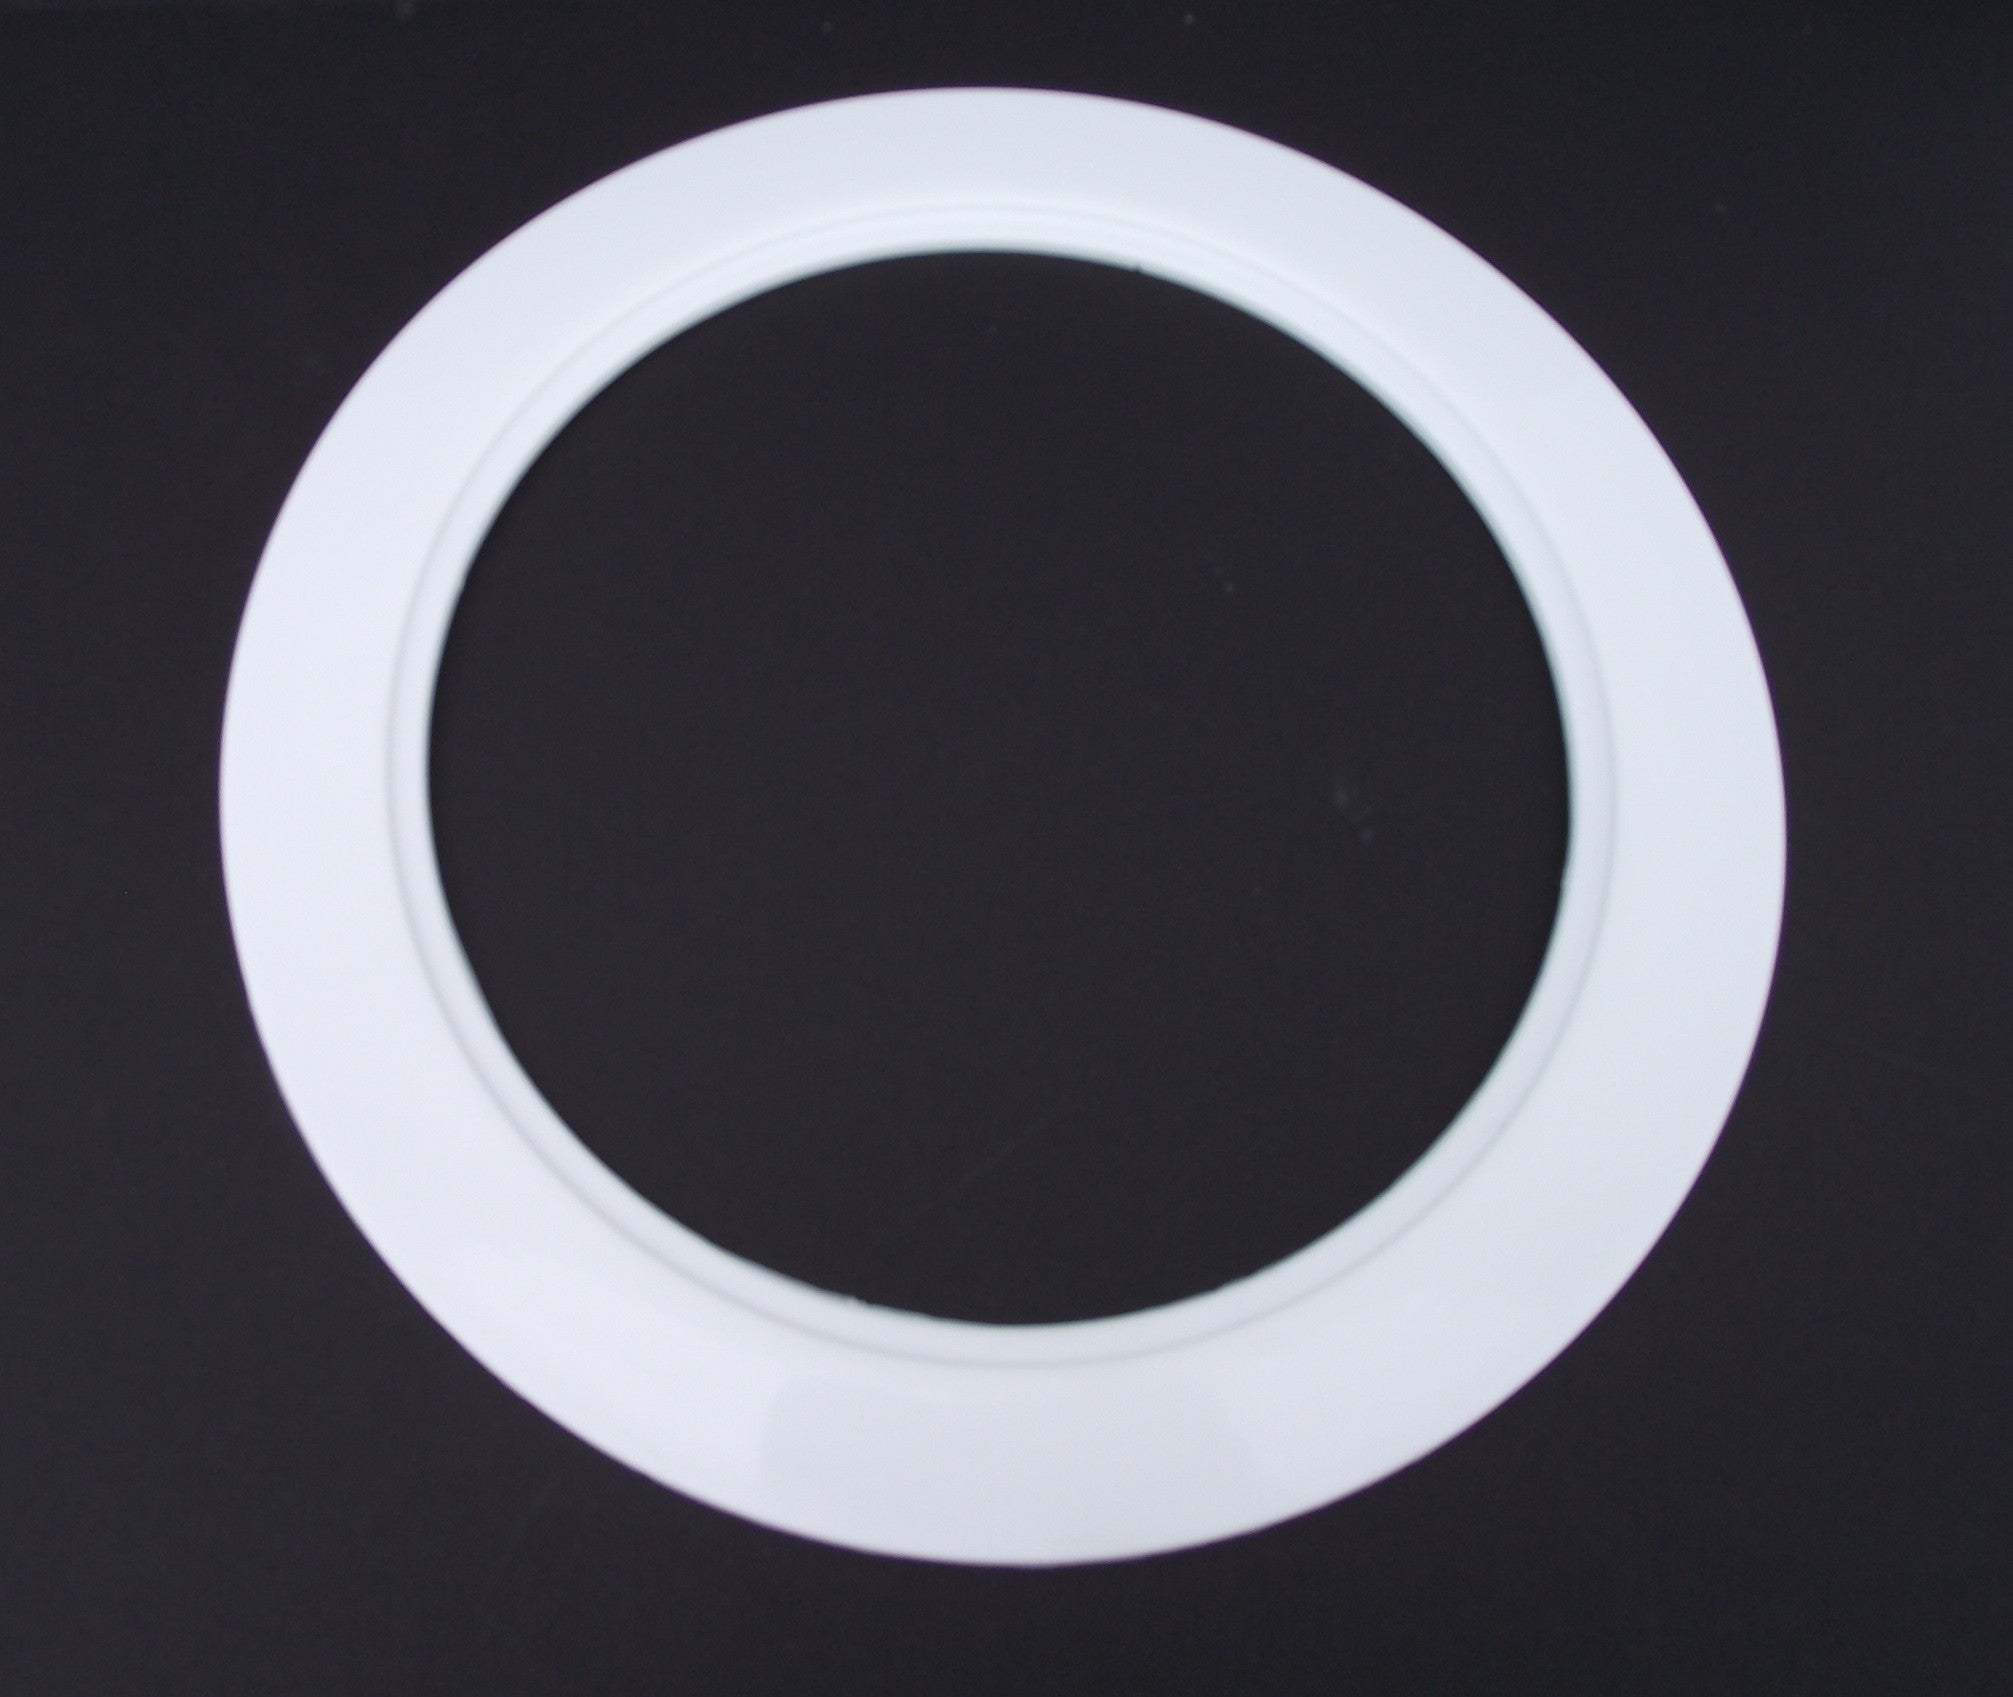 10, White Trim Ring for 6 Recessed Light Can Fixtures